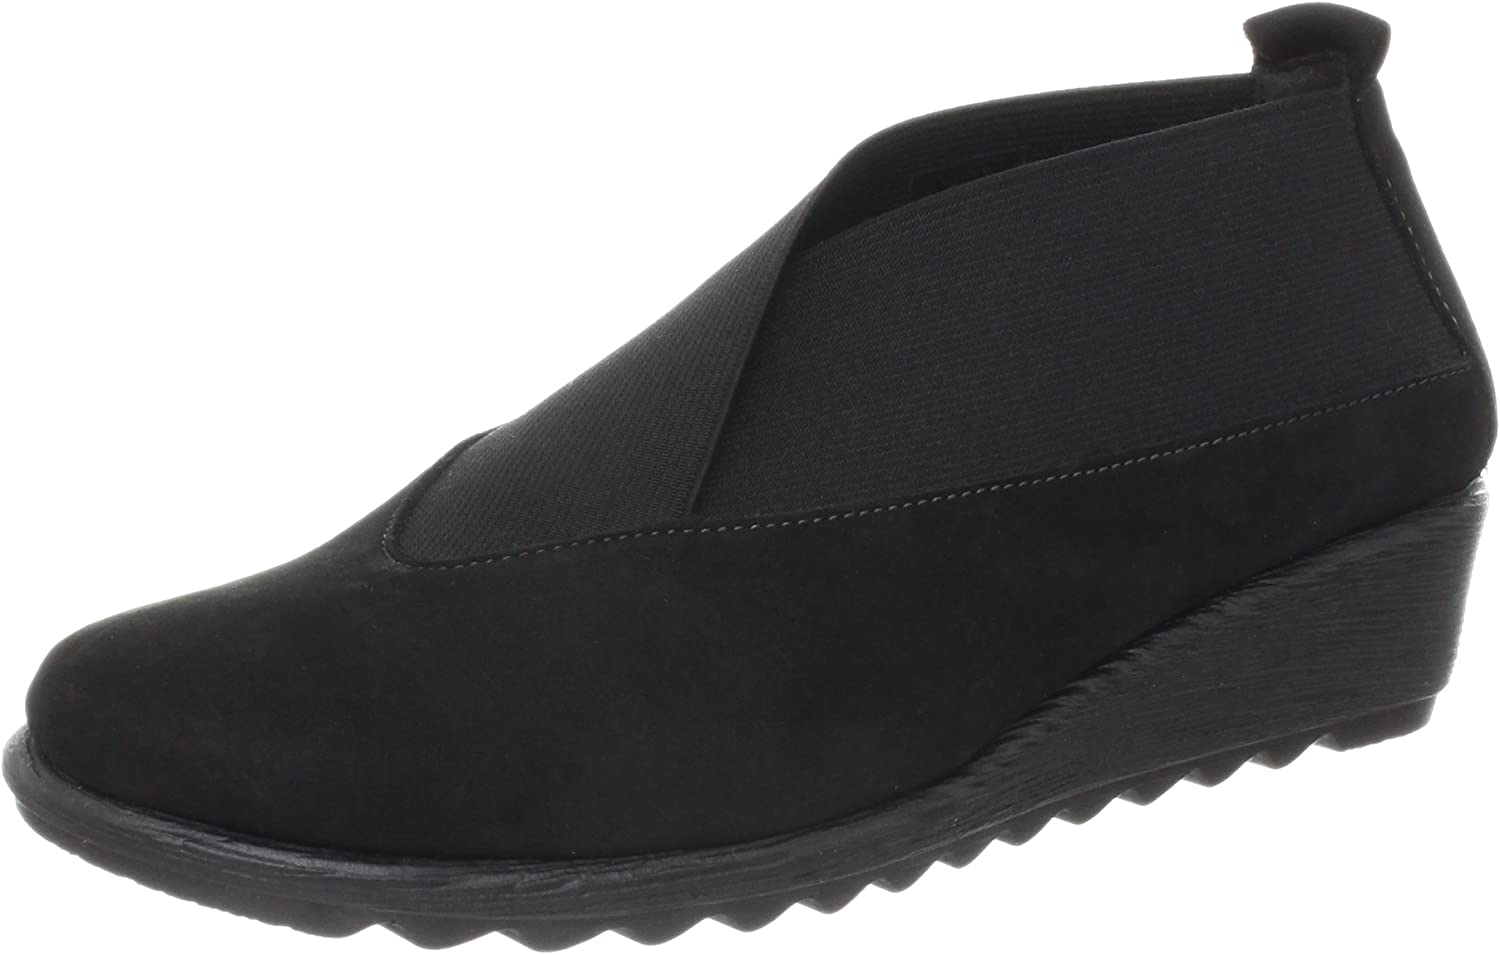 The Flexx Women s Stretch Run Moccasin